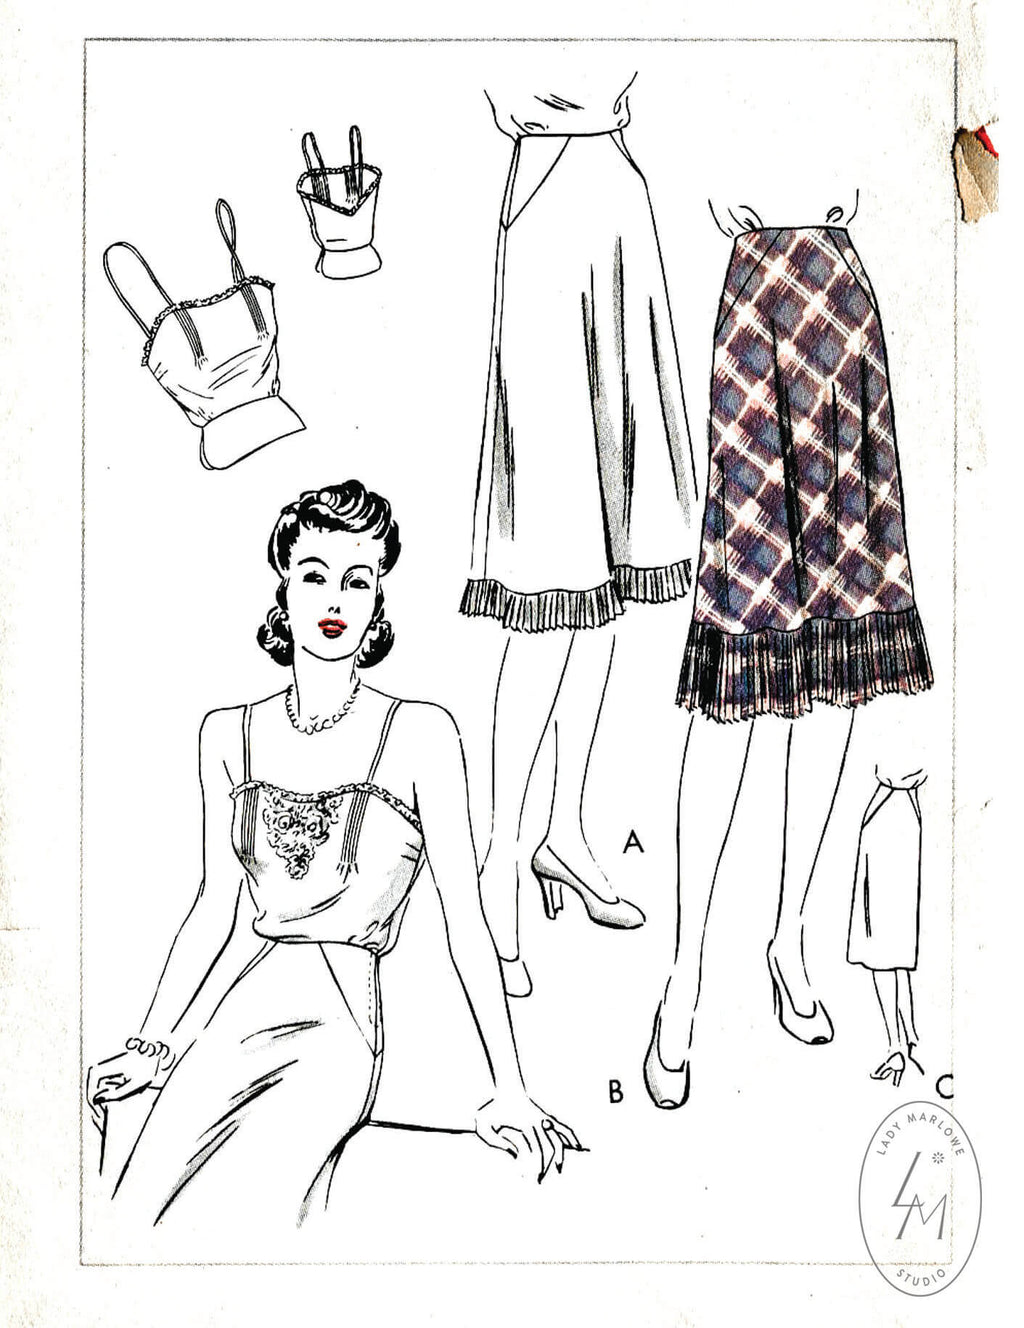 Vogue 8998 camisole and slip skirt vintage lingerie sewing pattern